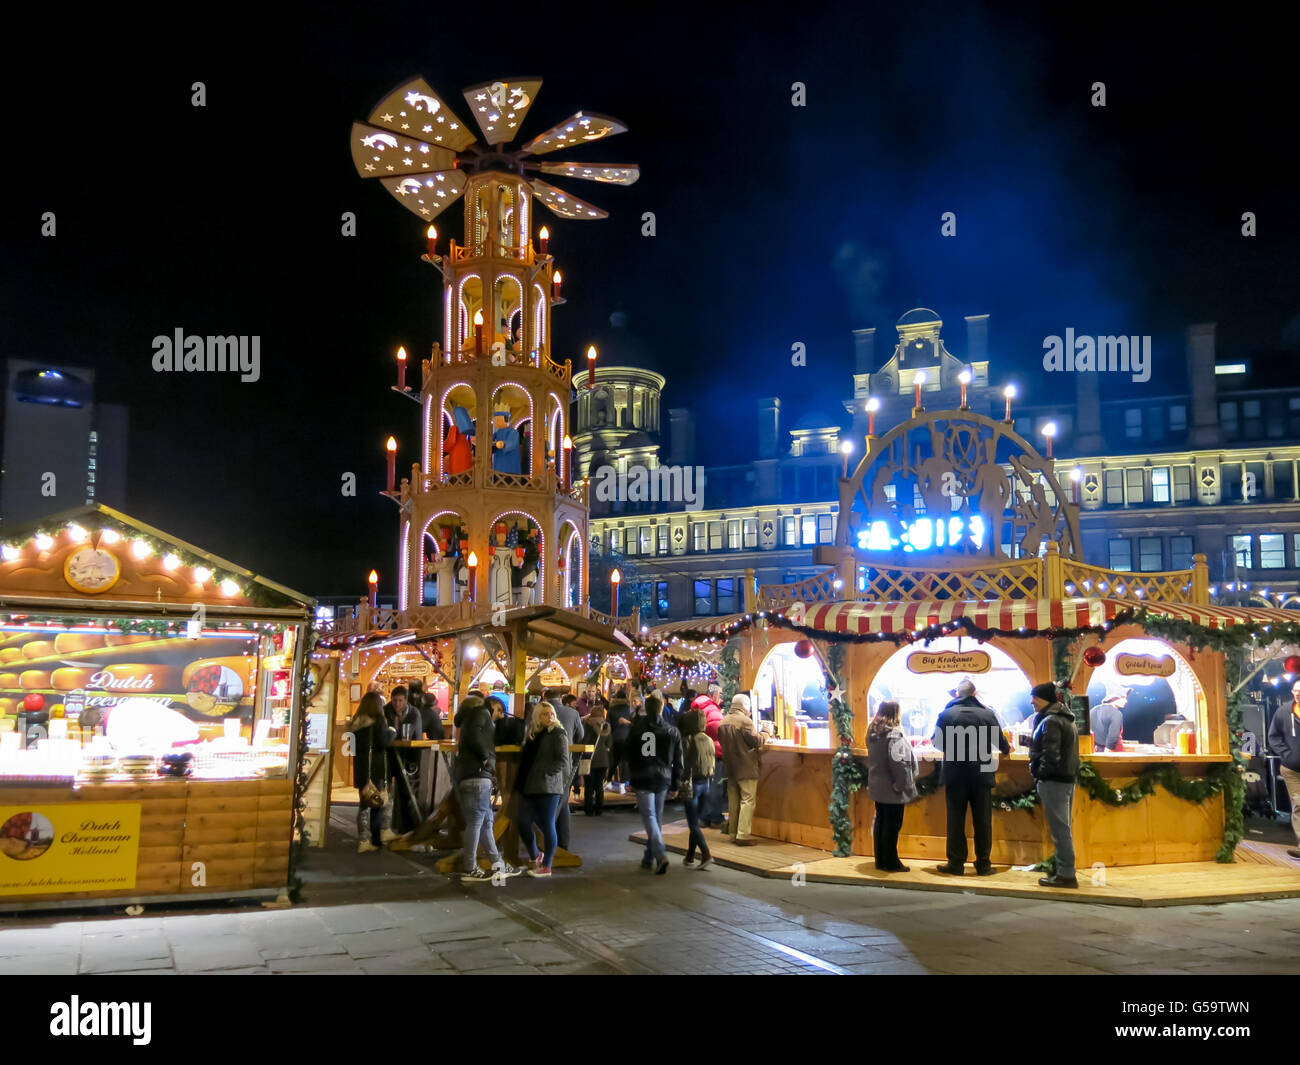 Night scene with people on Christmas Market in Manchester, England, United Kingdom Stock Photo